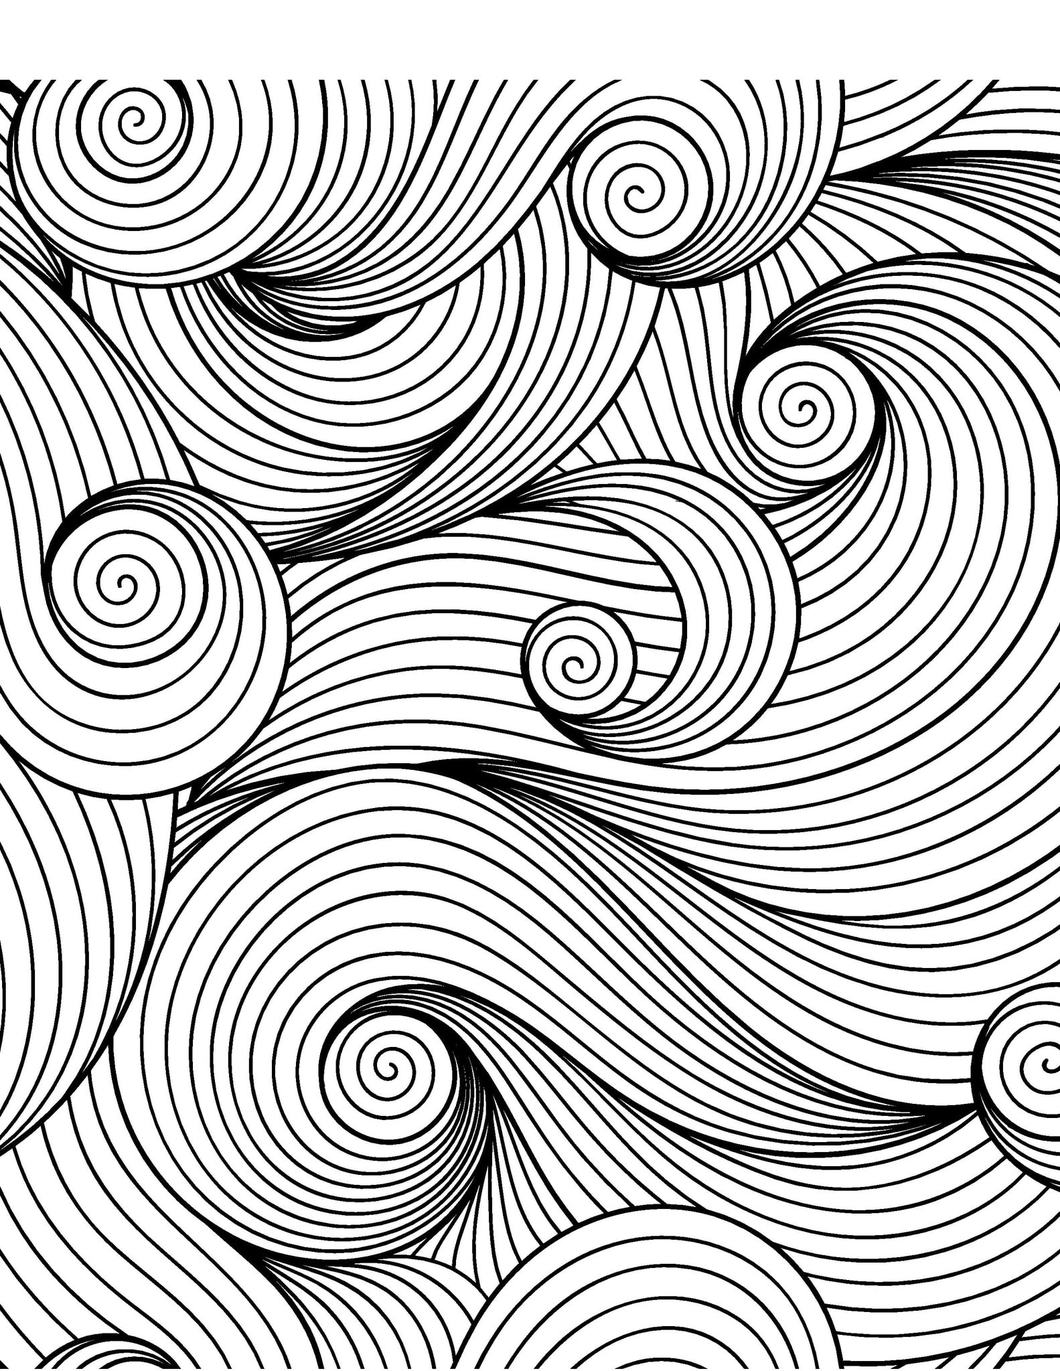 coloring pages for adults patterns adult coloring pages patterns coloring pages for kids pages patterns for adults coloring